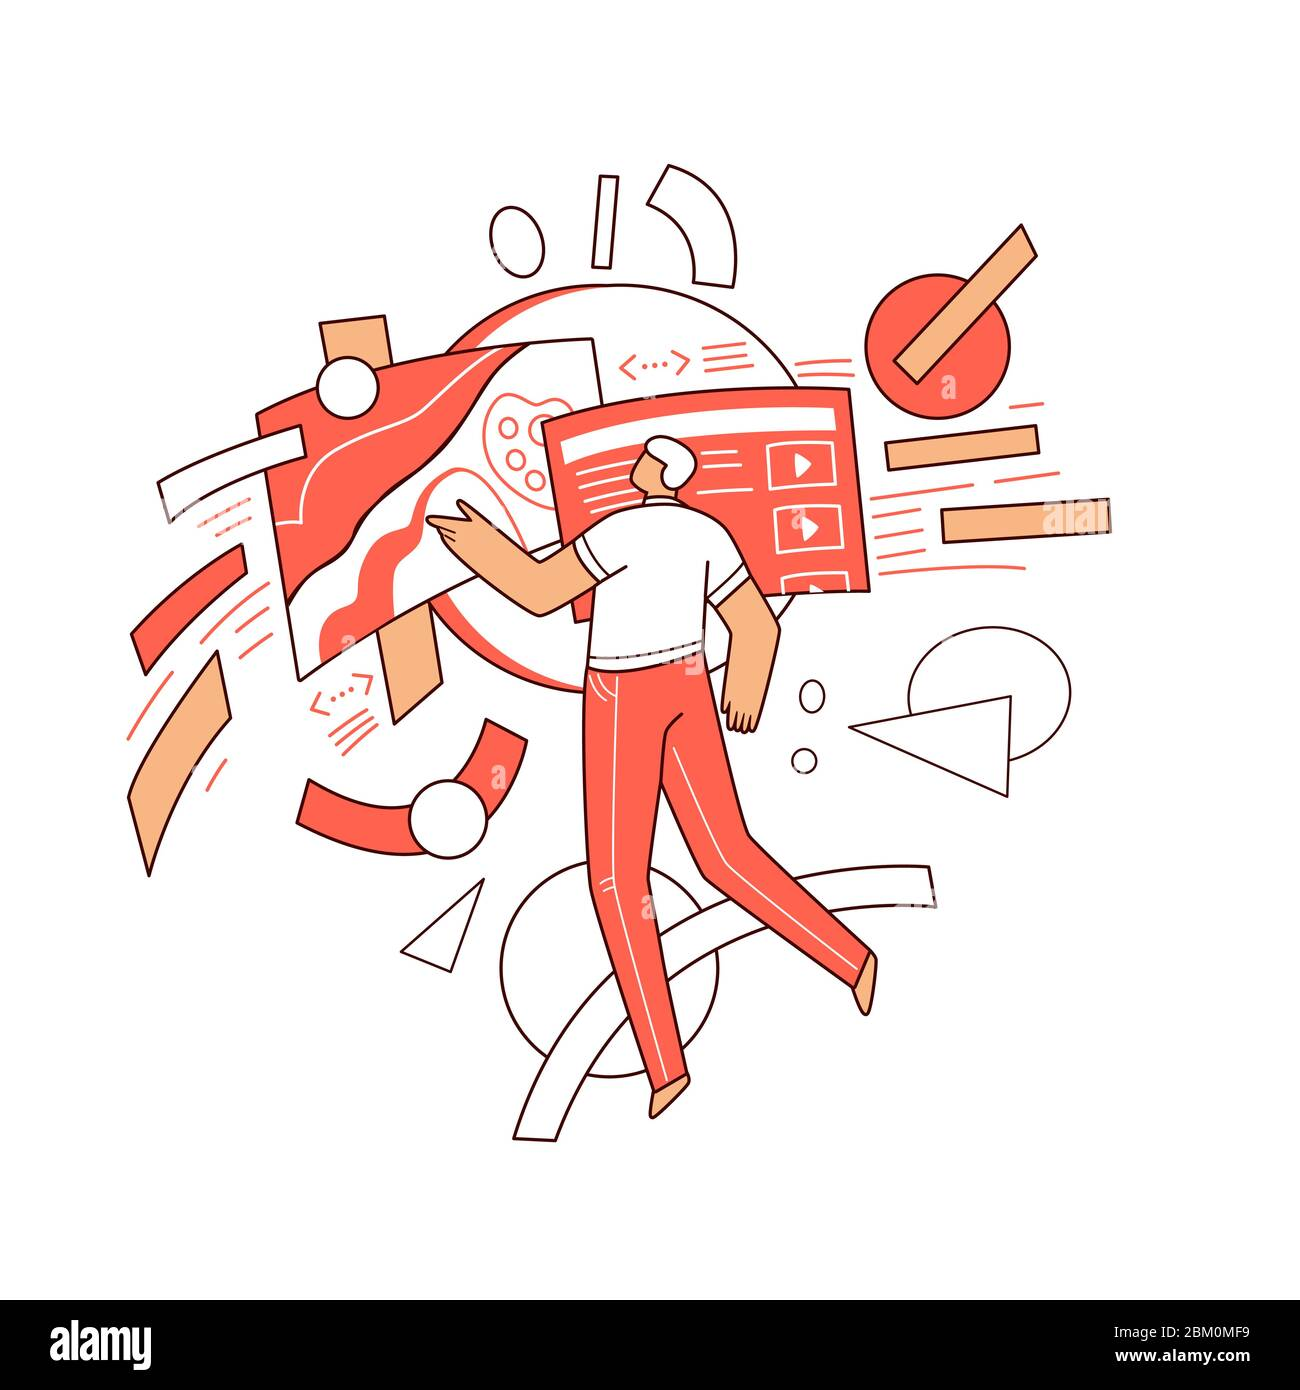 Online education vector flat concept - Man character flying around abstract educational elements, web app, video course in computer, science, art Stock Vector